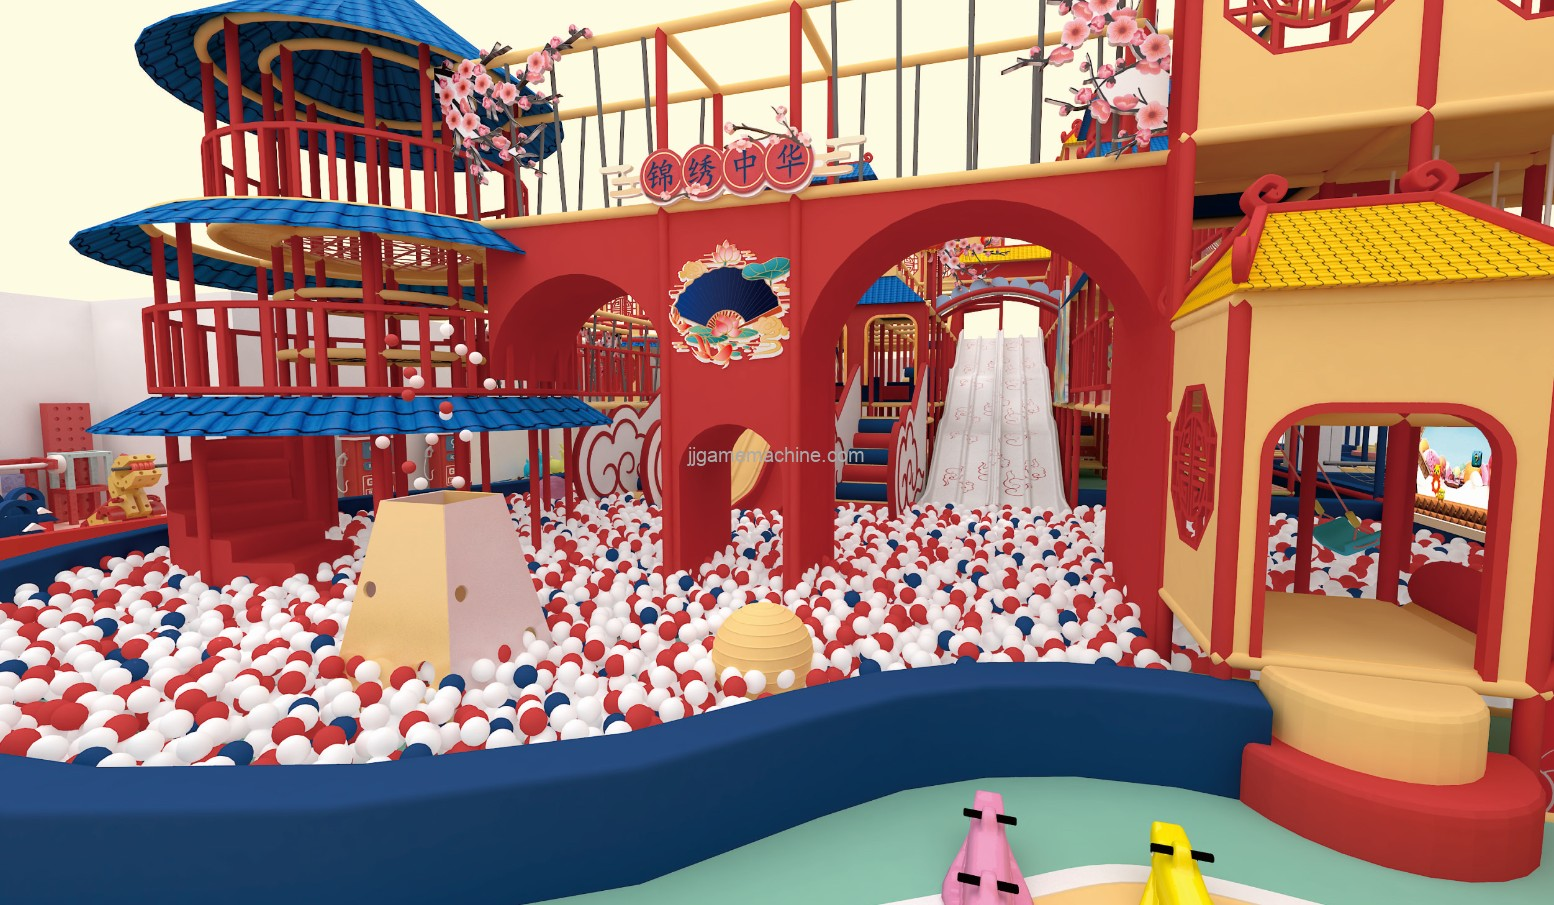 Suggestions for opening a children's playground